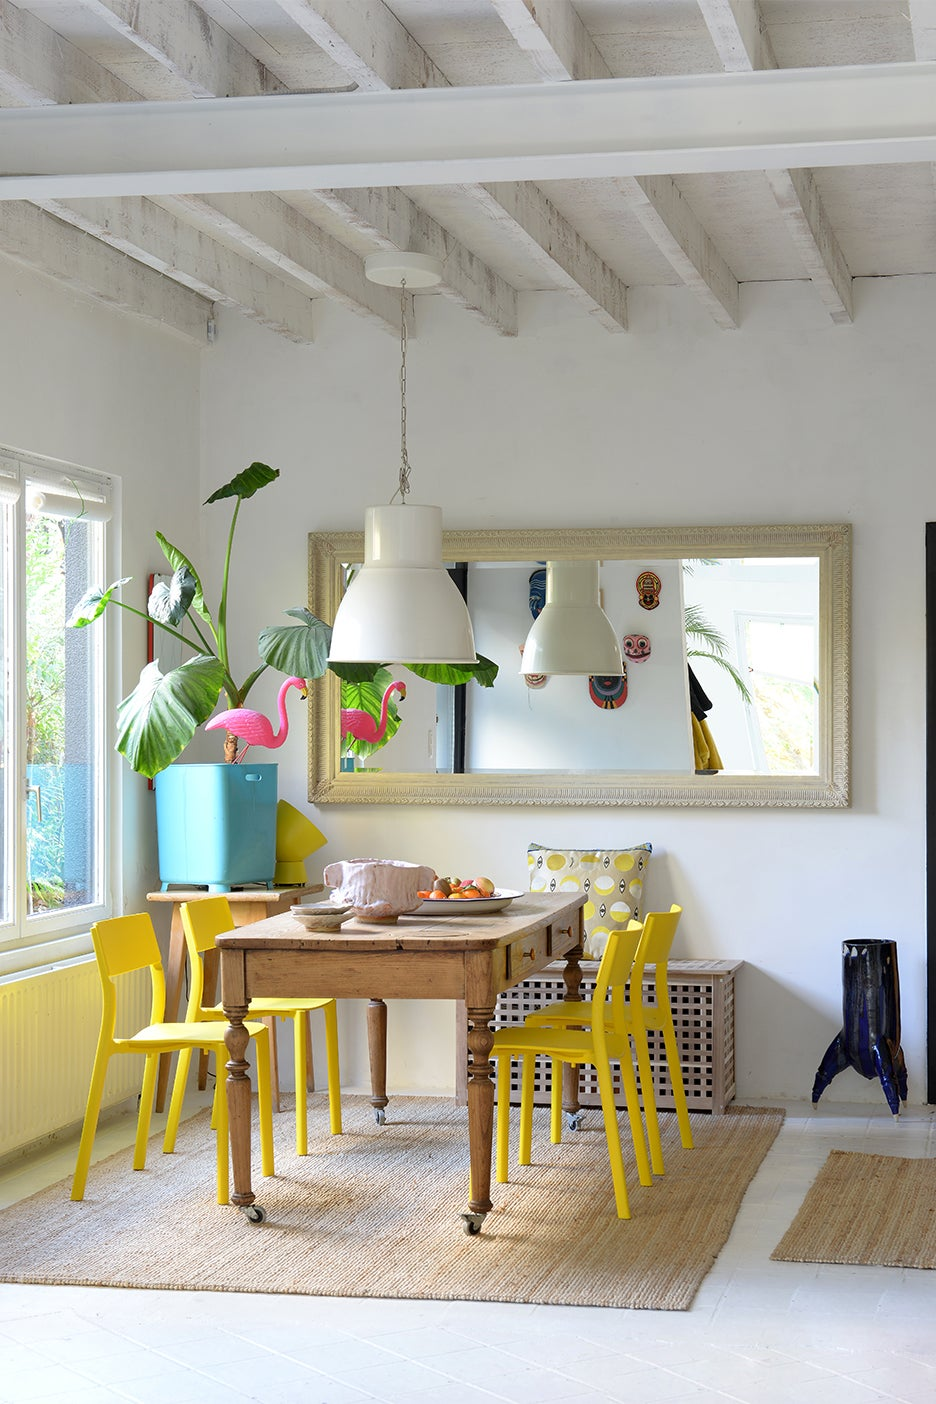 a dining room with yellow chairs